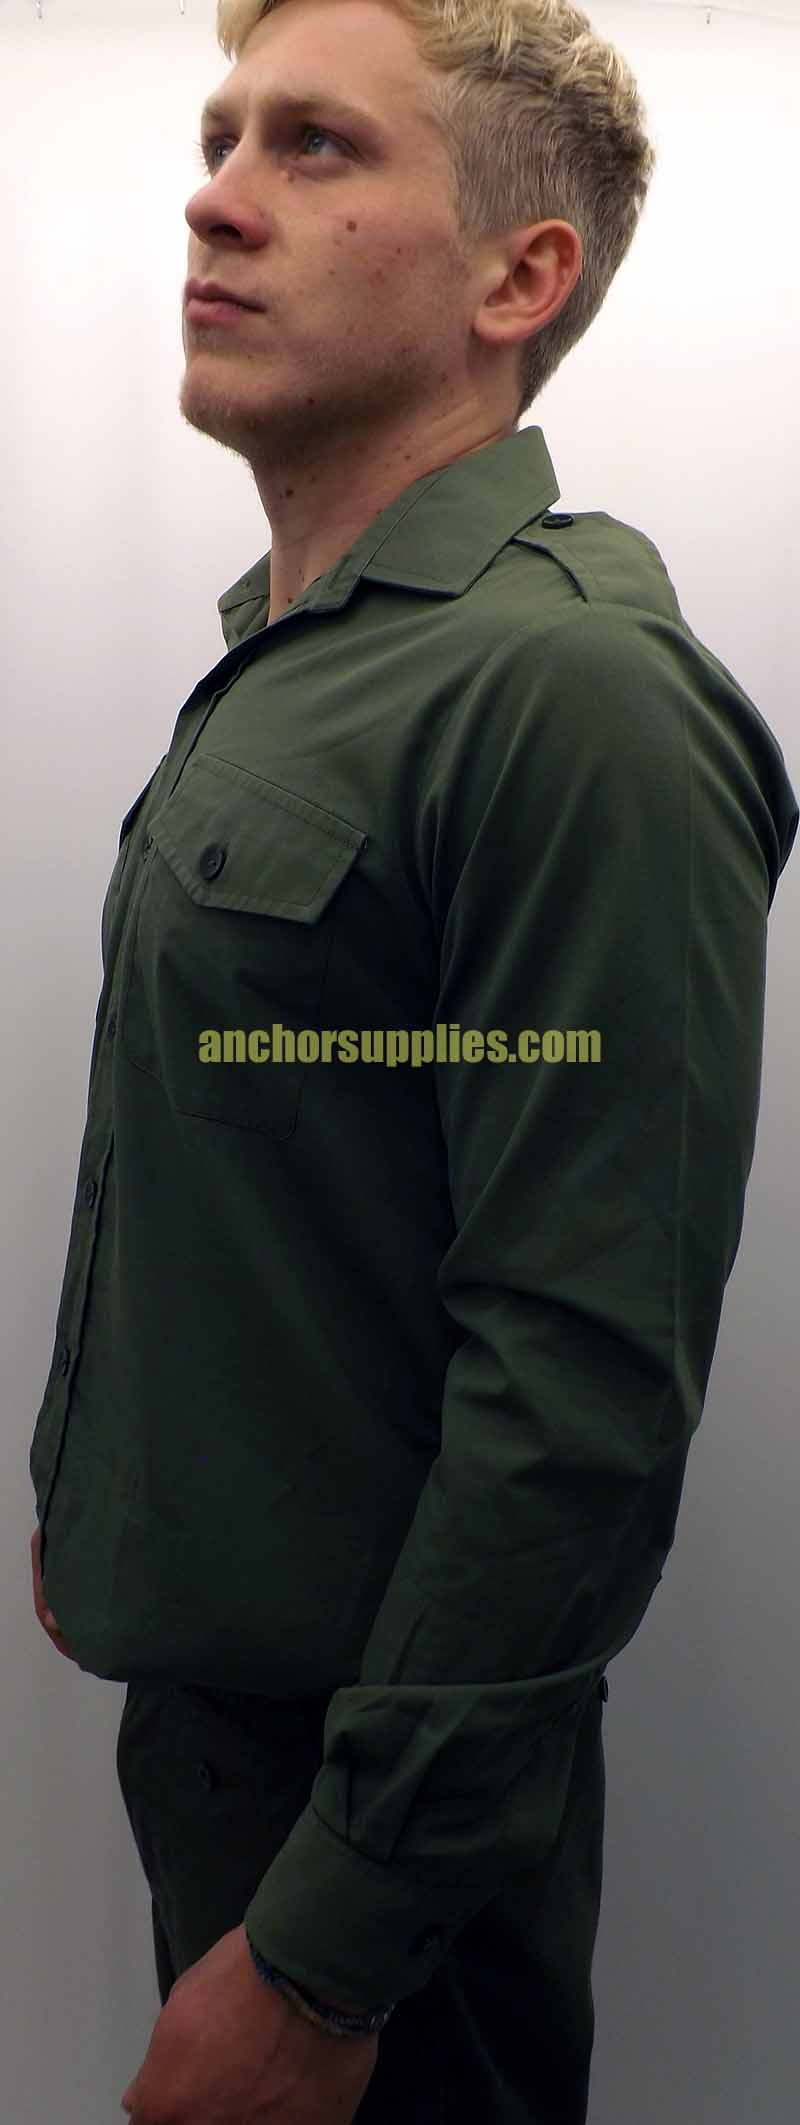 British Army GS (General Service) Shirt